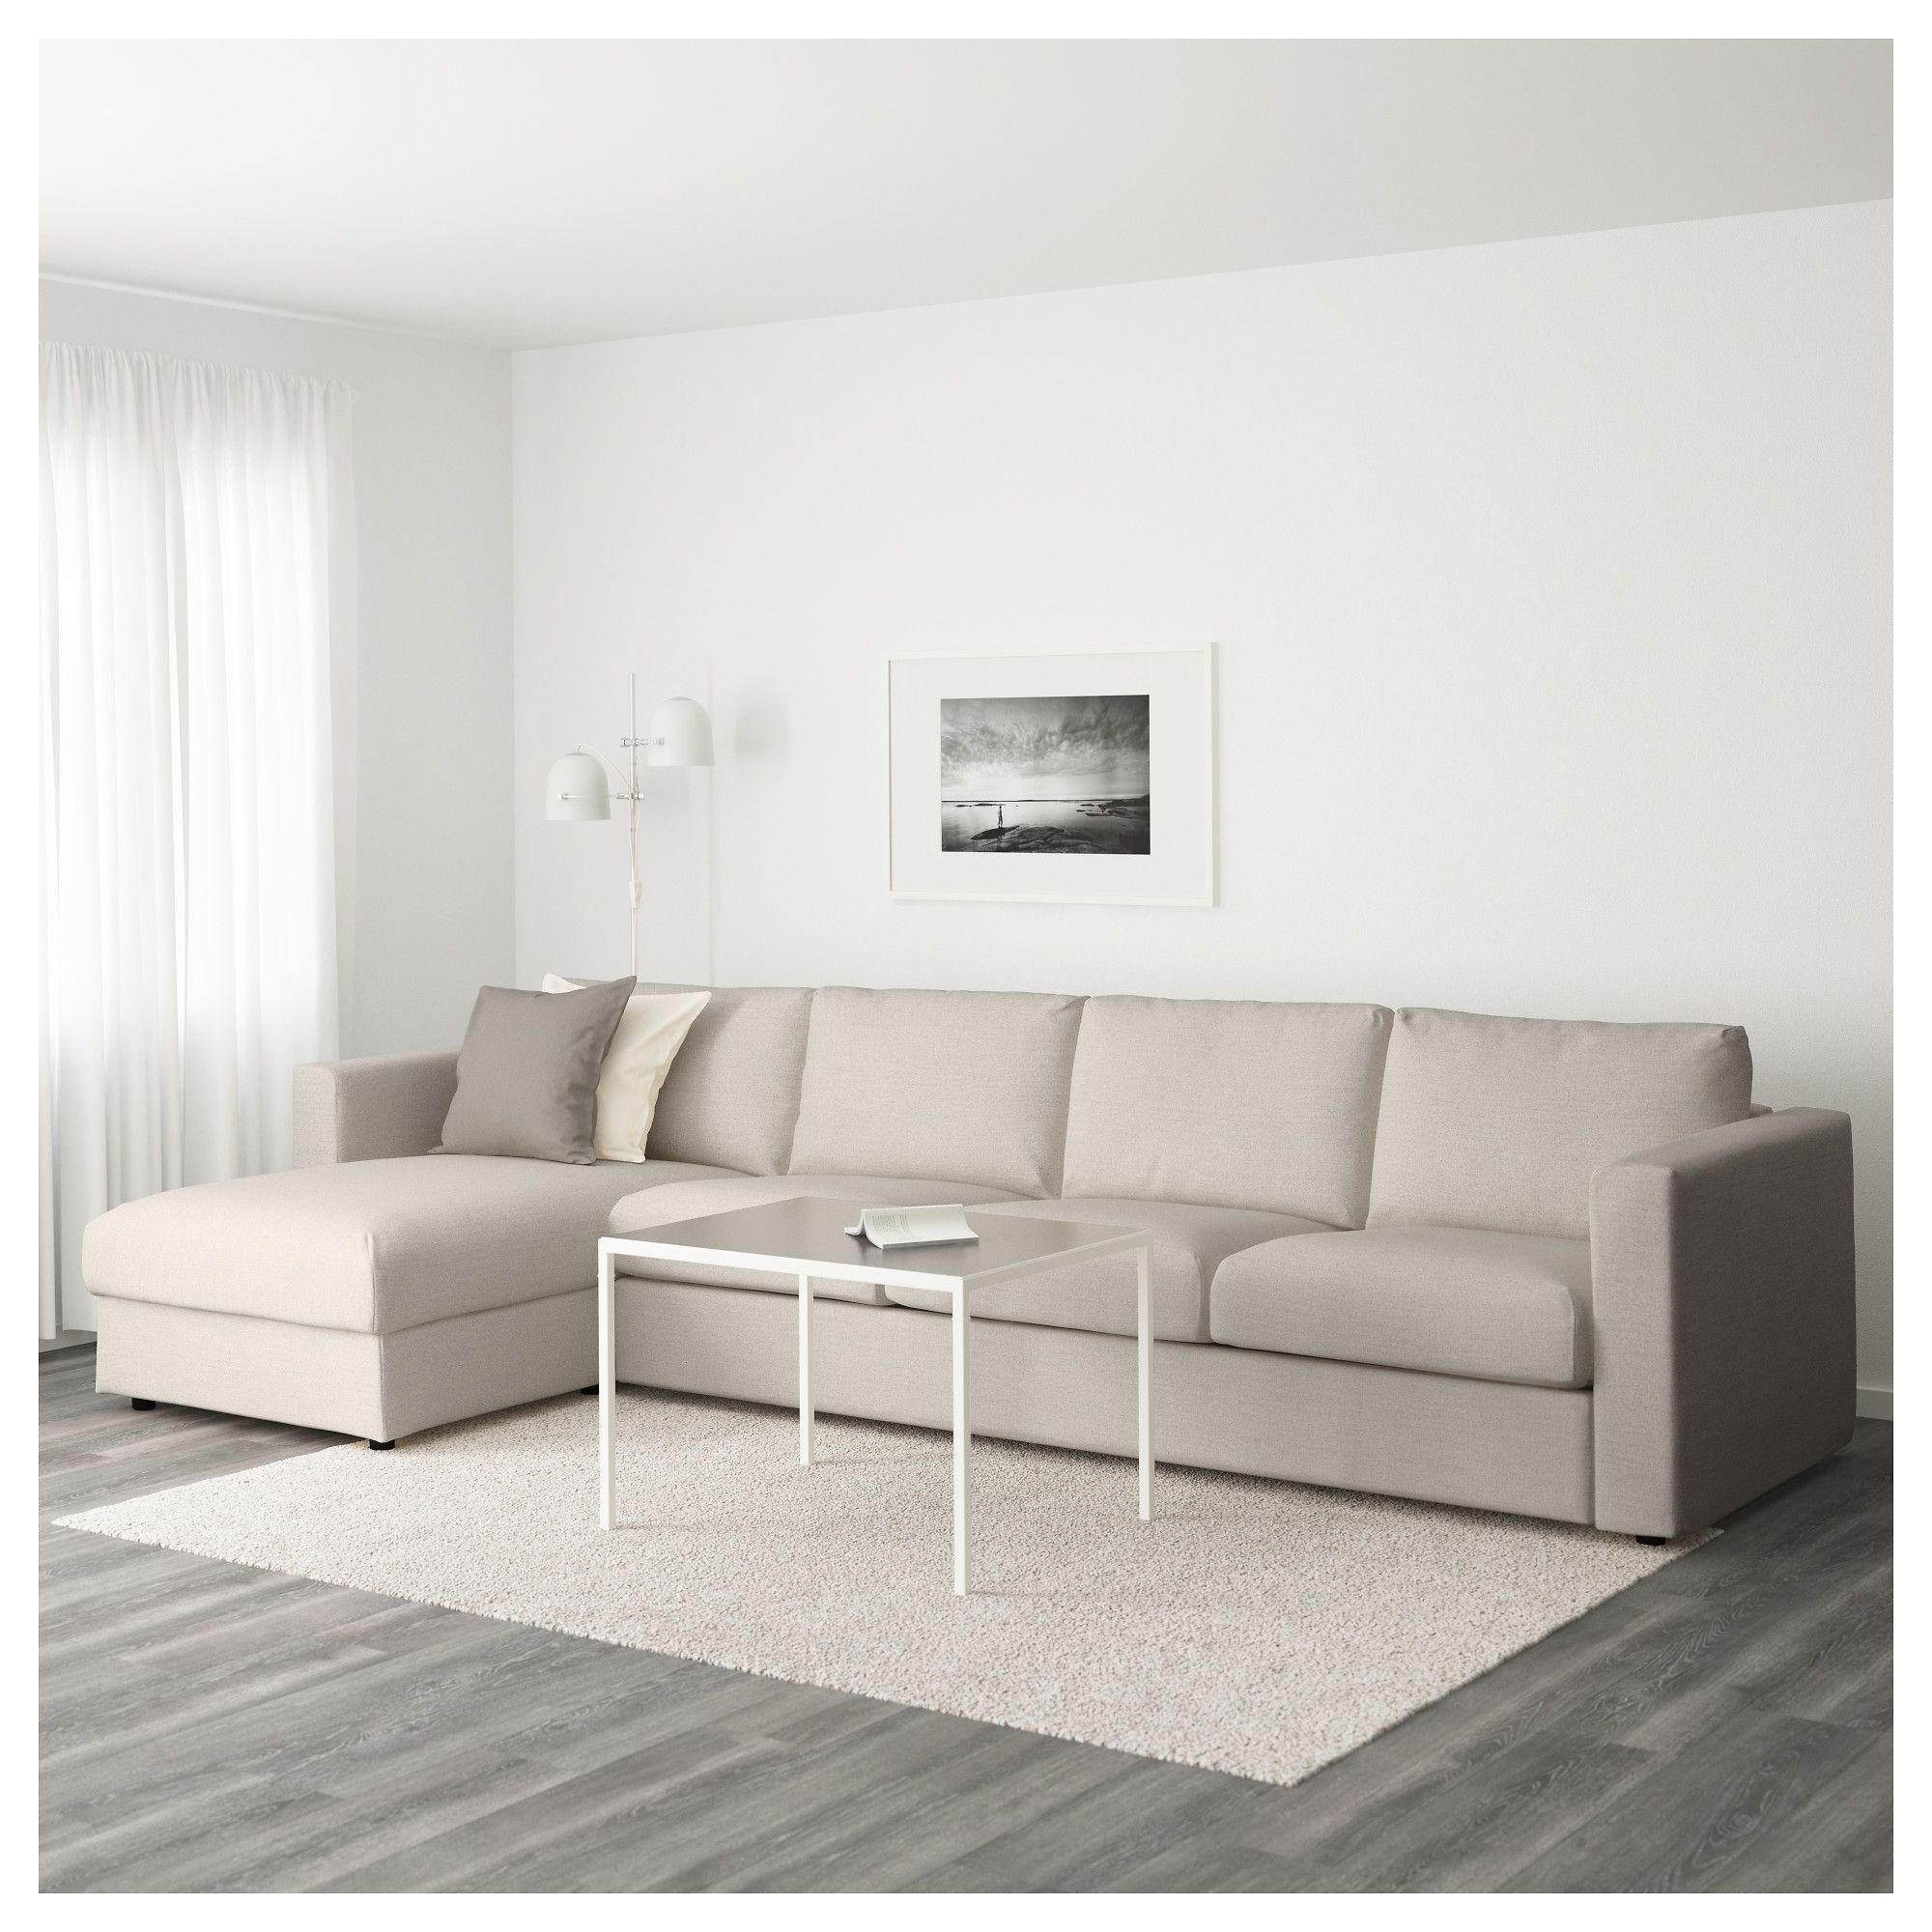 Ikea Sofa 4 Seater Ikea Vimle Sectional 4 Seat With Chaise Gunnared Beige House